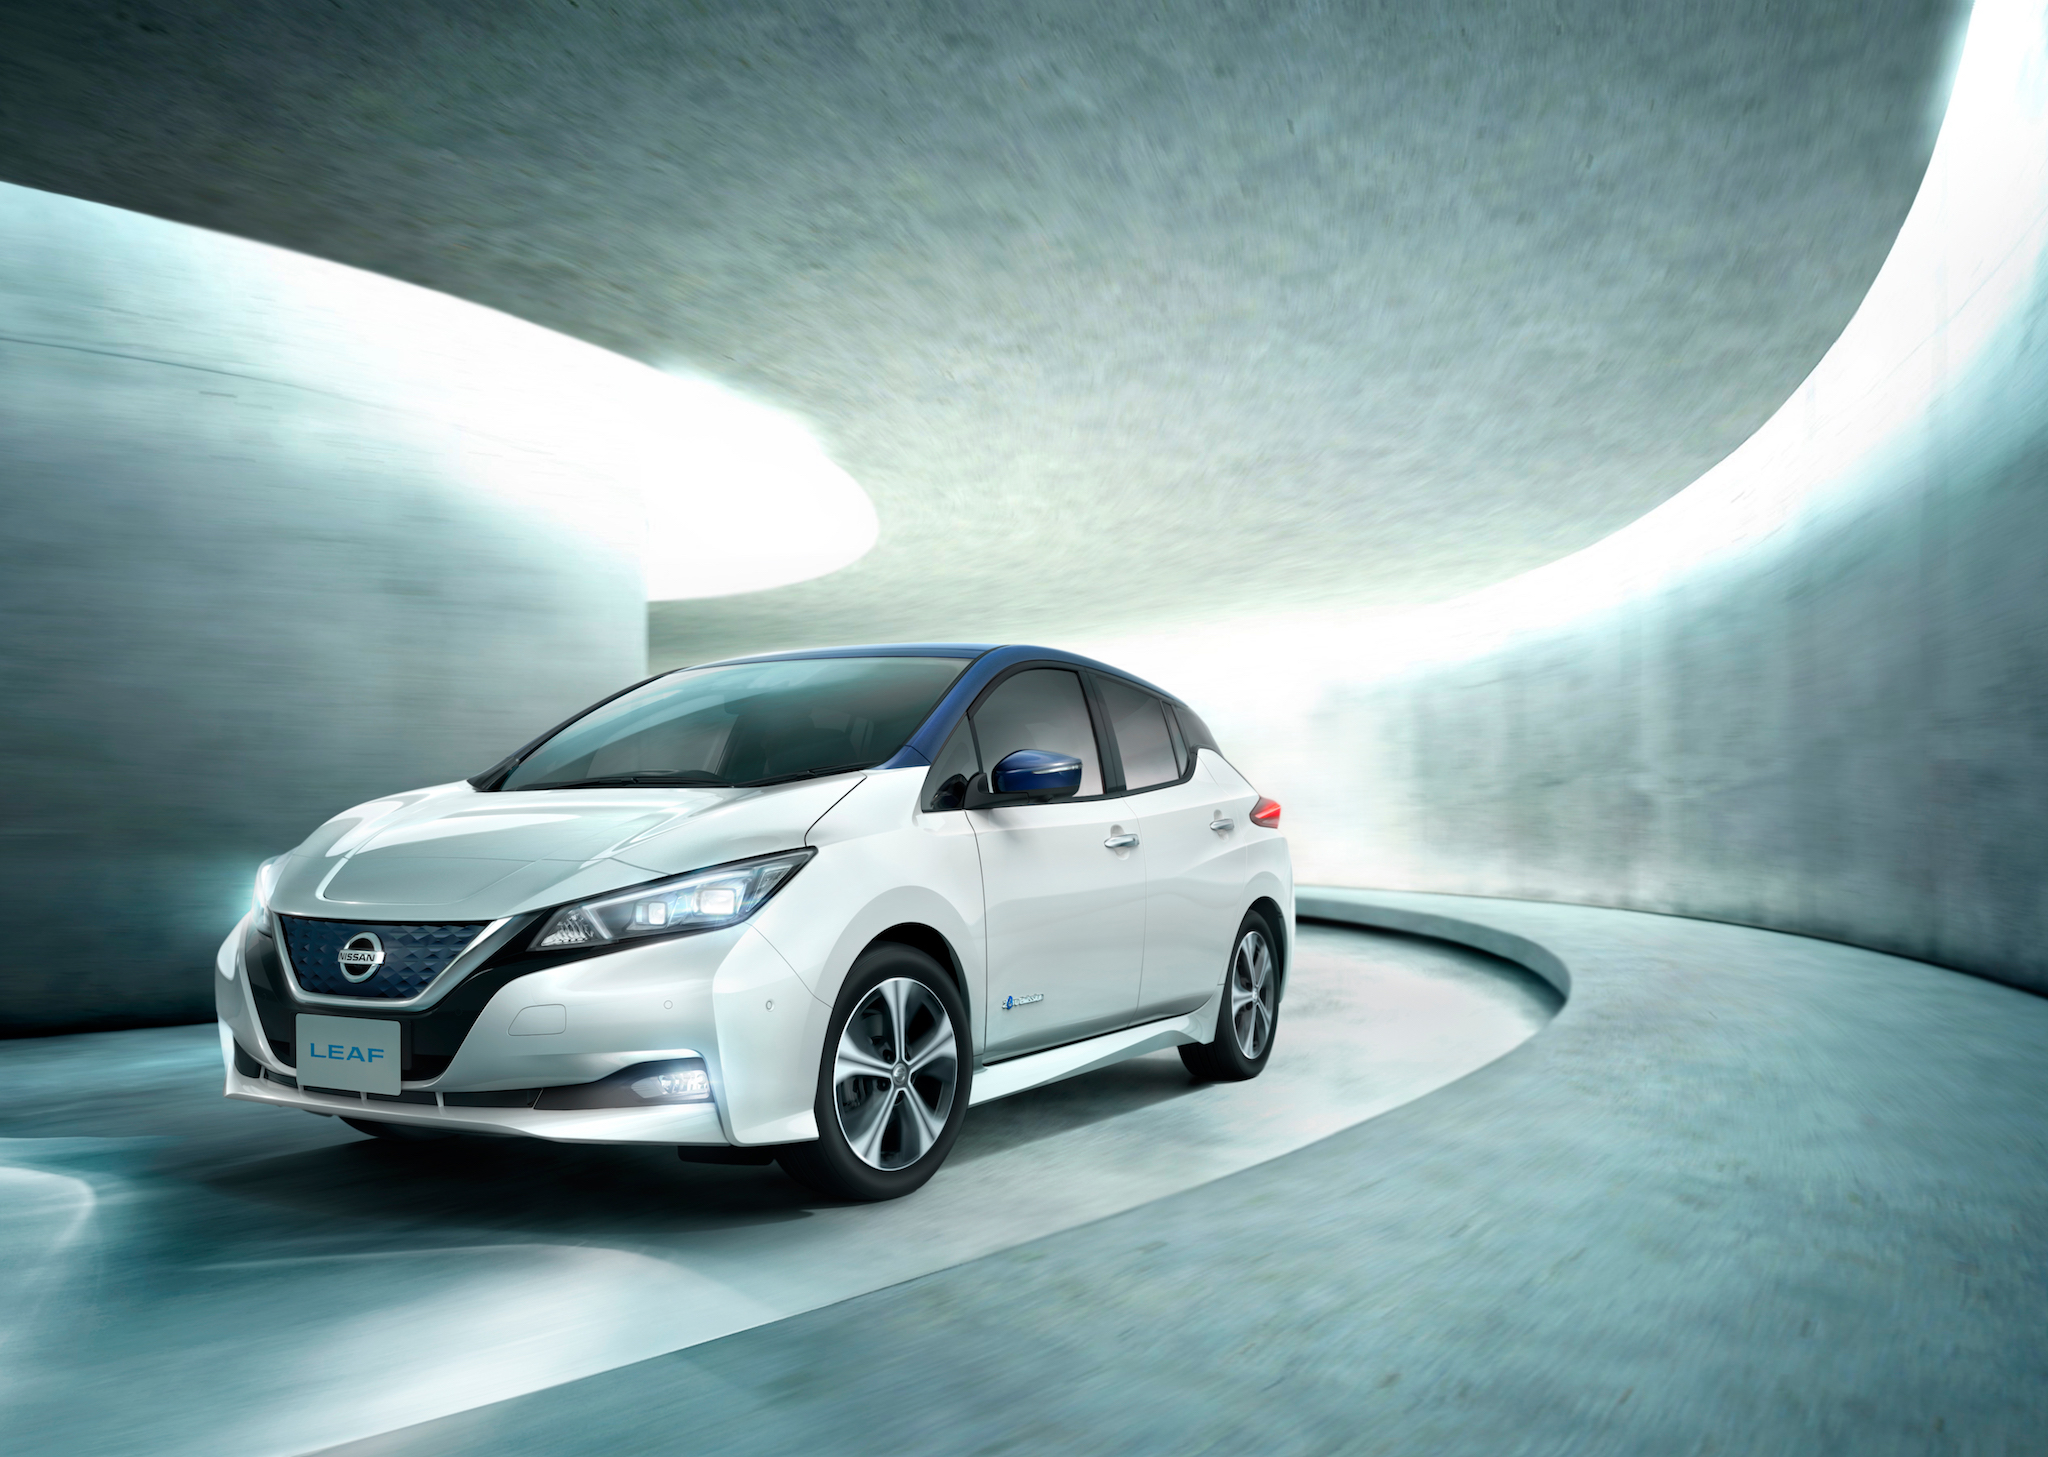 The all-new 2018 Nissan Leaf. When it arrives in January in the US, it will have a 150-mile range and a base price of under $30,000.